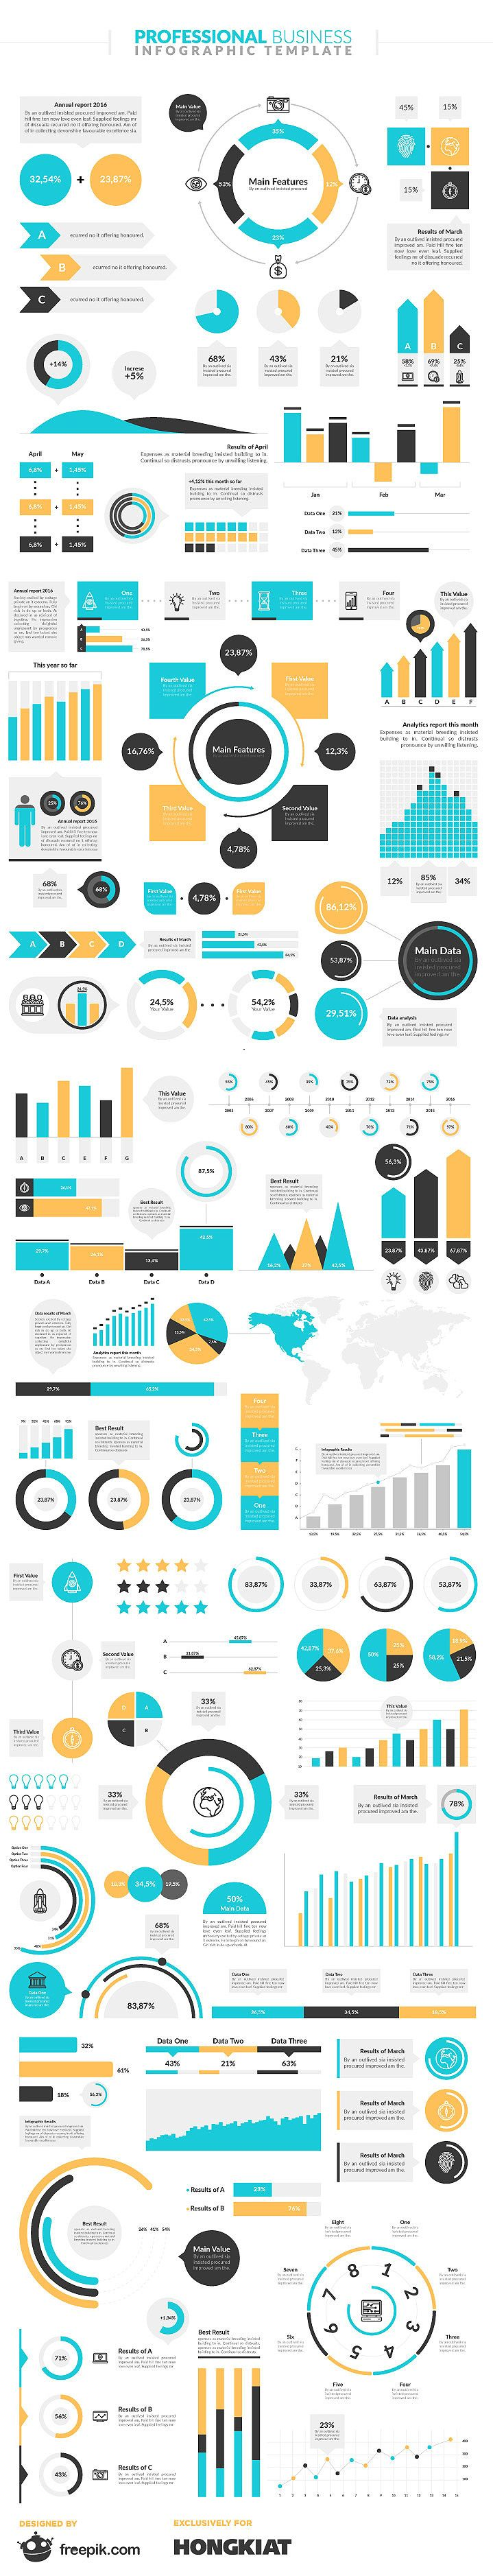 freebie: professional business infographic template | infographic